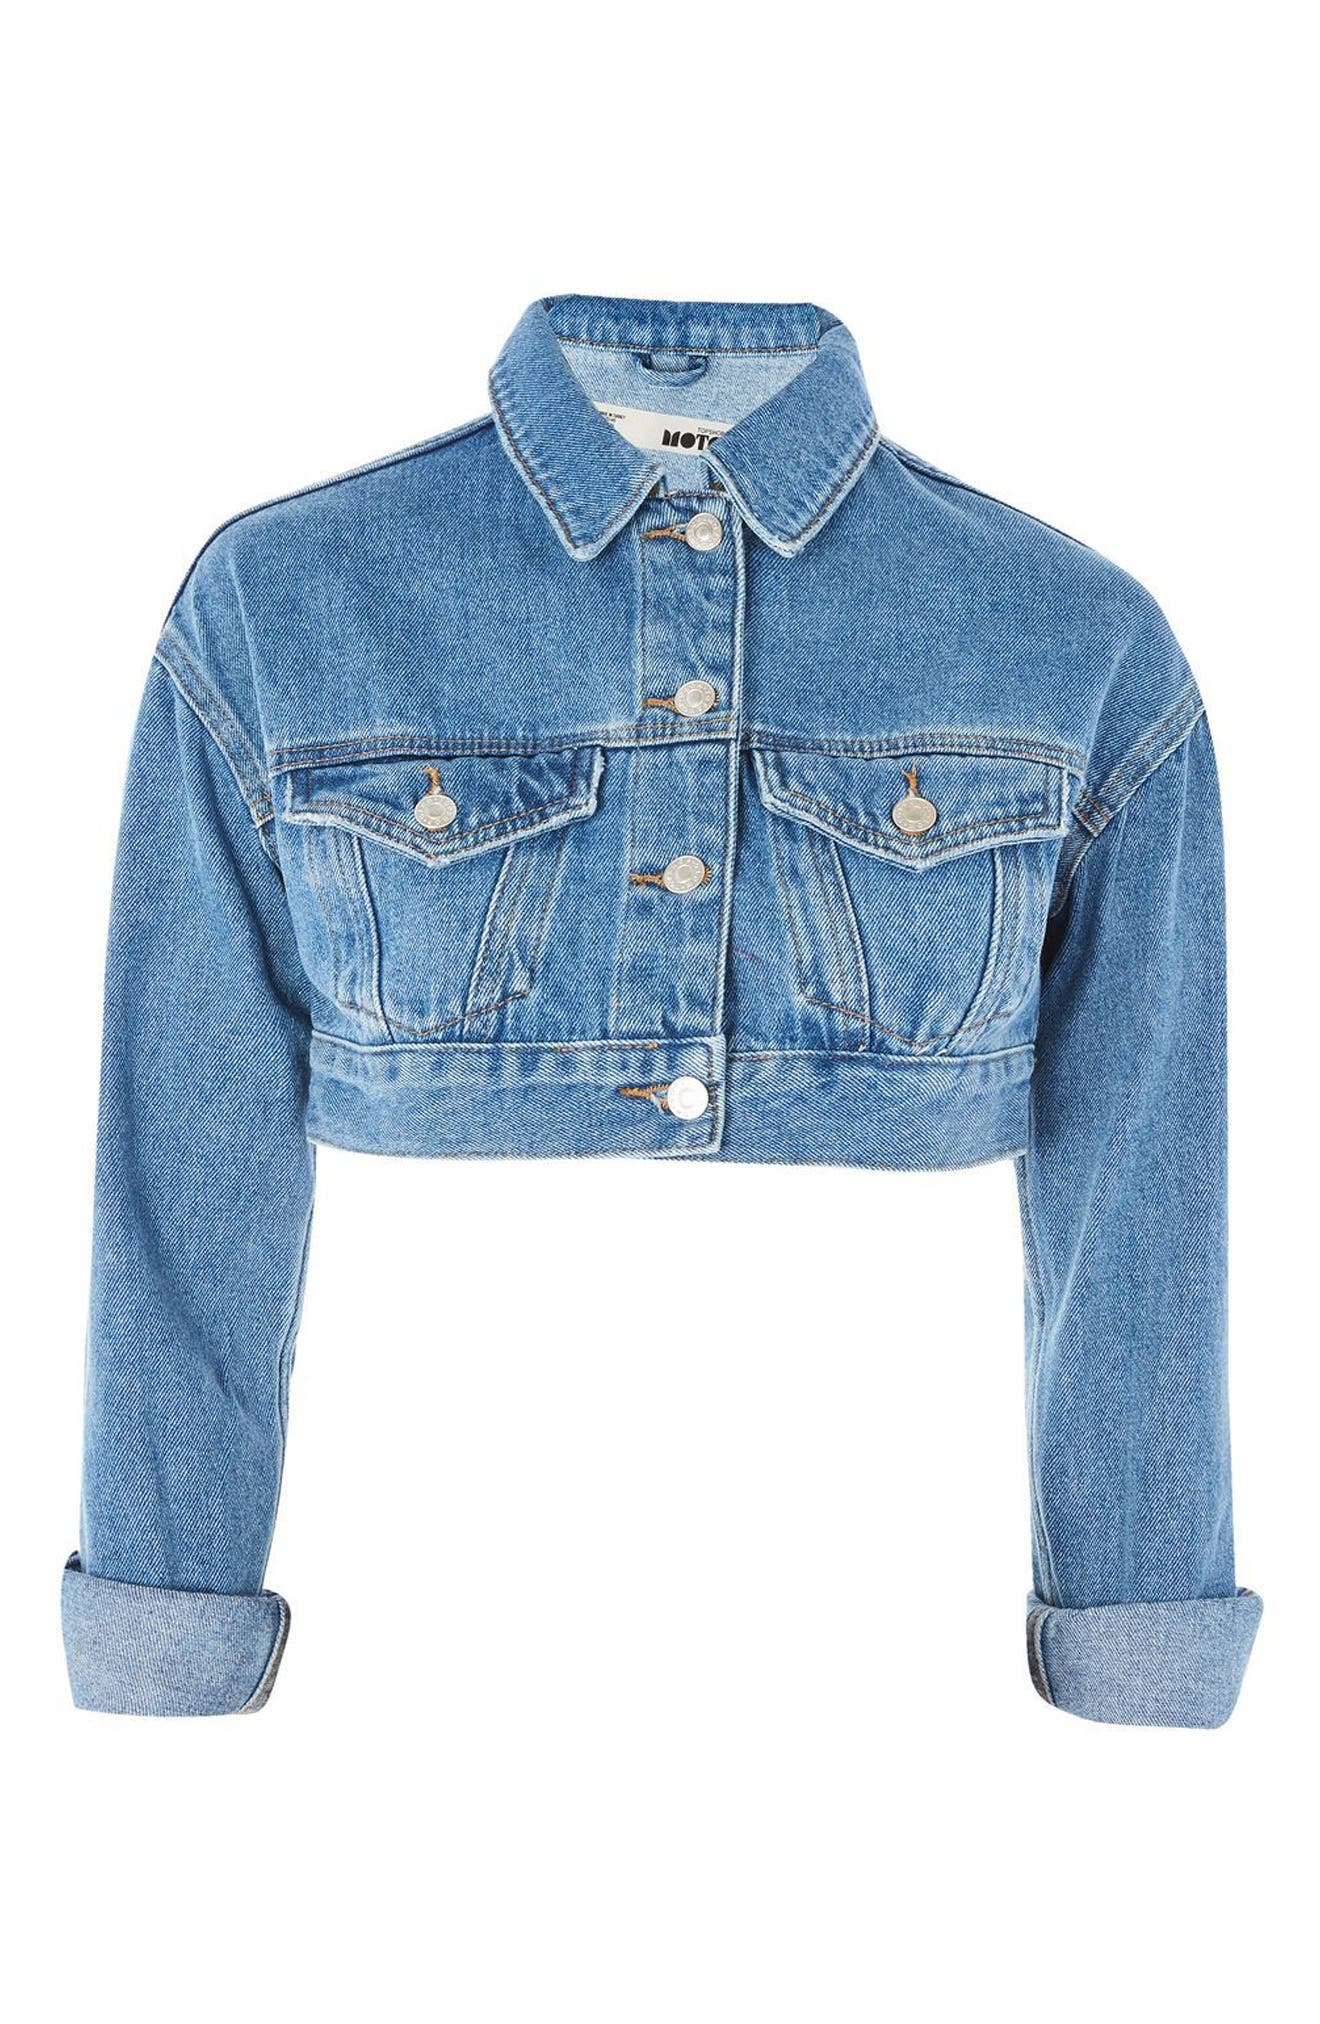 Shrunken Crop Denim Jacket,                             Alternate thumbnail 3, color,                             400